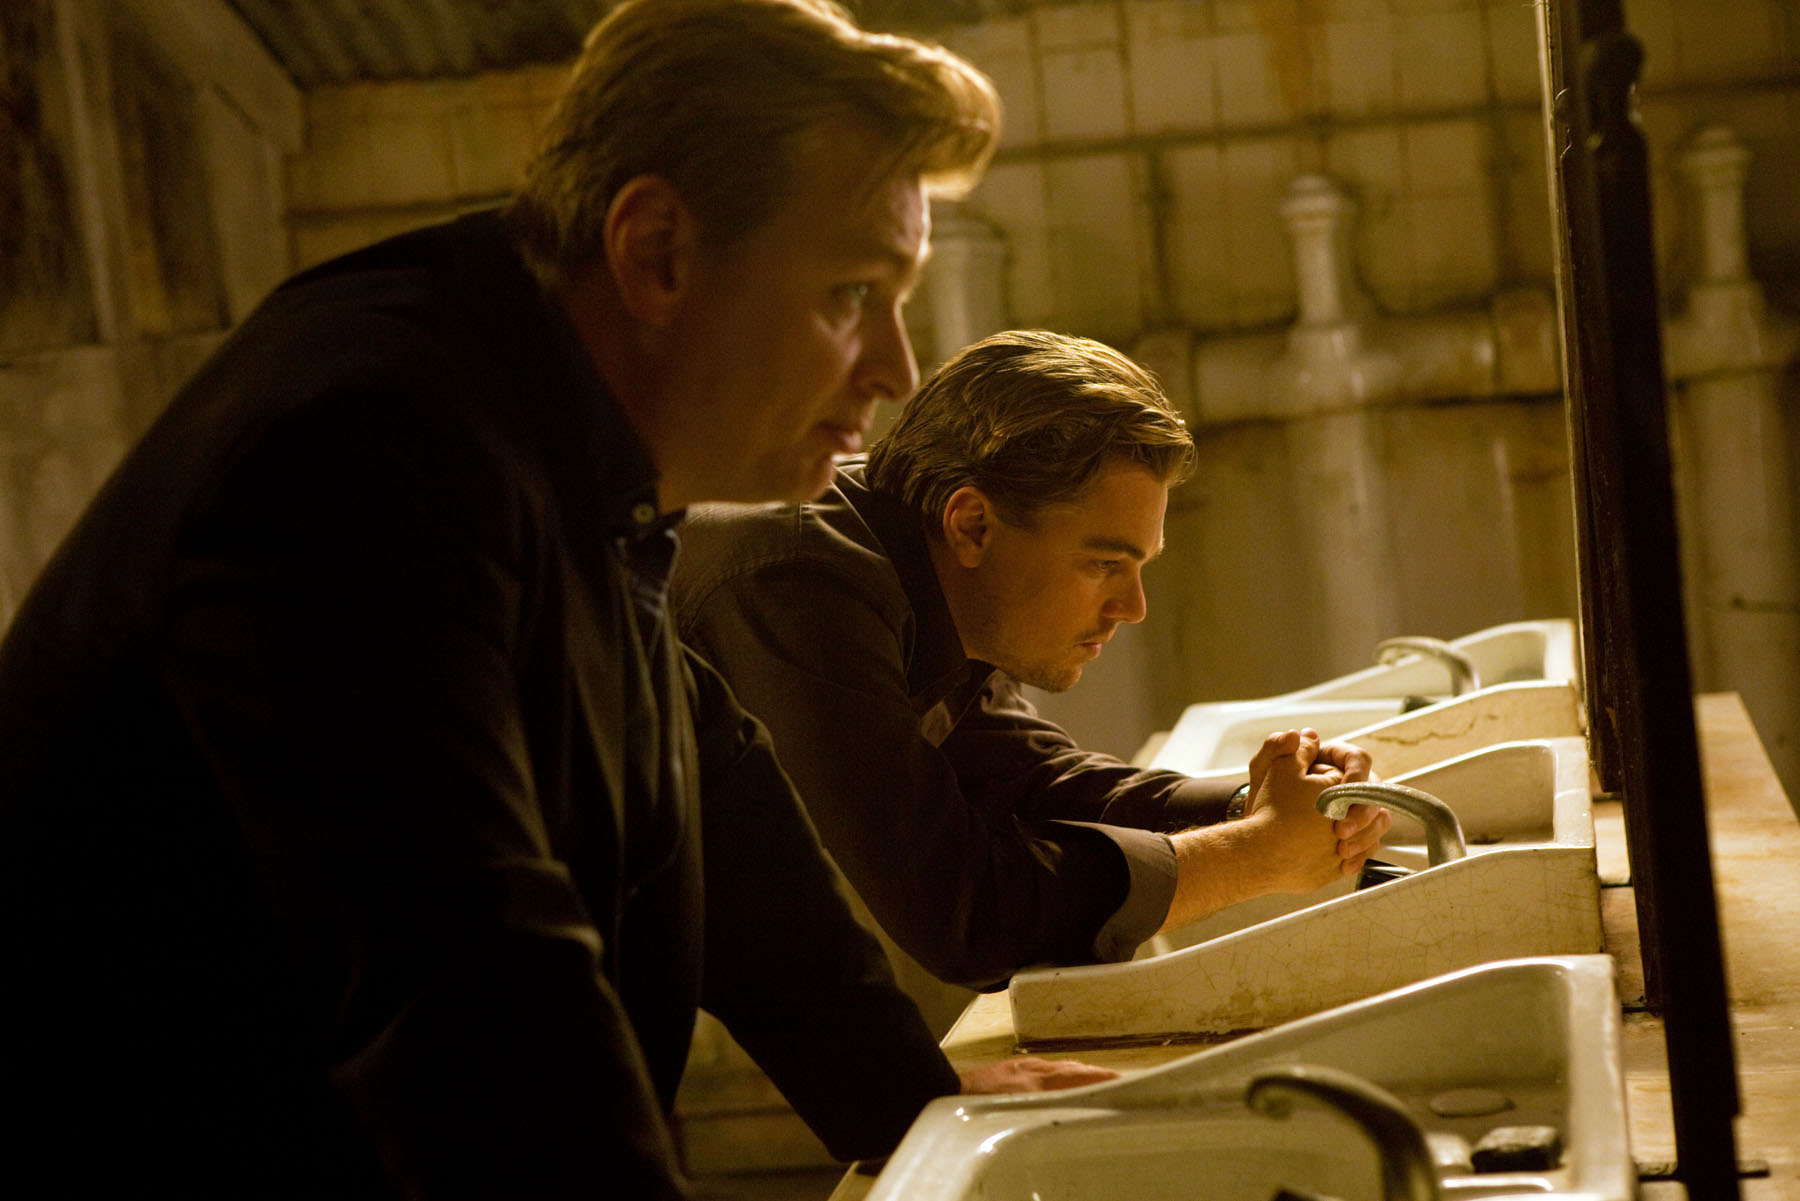 EXCLUSIVE. SUNDAY CALENDAR COVER STORY FOR APRIL 4, 2010. DO NOT USE PRIOR TO PUBLICATION. (L-r) Director CHRISTOPHER NOLAN with LEONARDO DI CAPRIO on the set of Warner Bros. PicturesÕ and Legendary PicturesÕ sci-fi action movie ÒInception,Ó a Warner Bros. Pictures release.